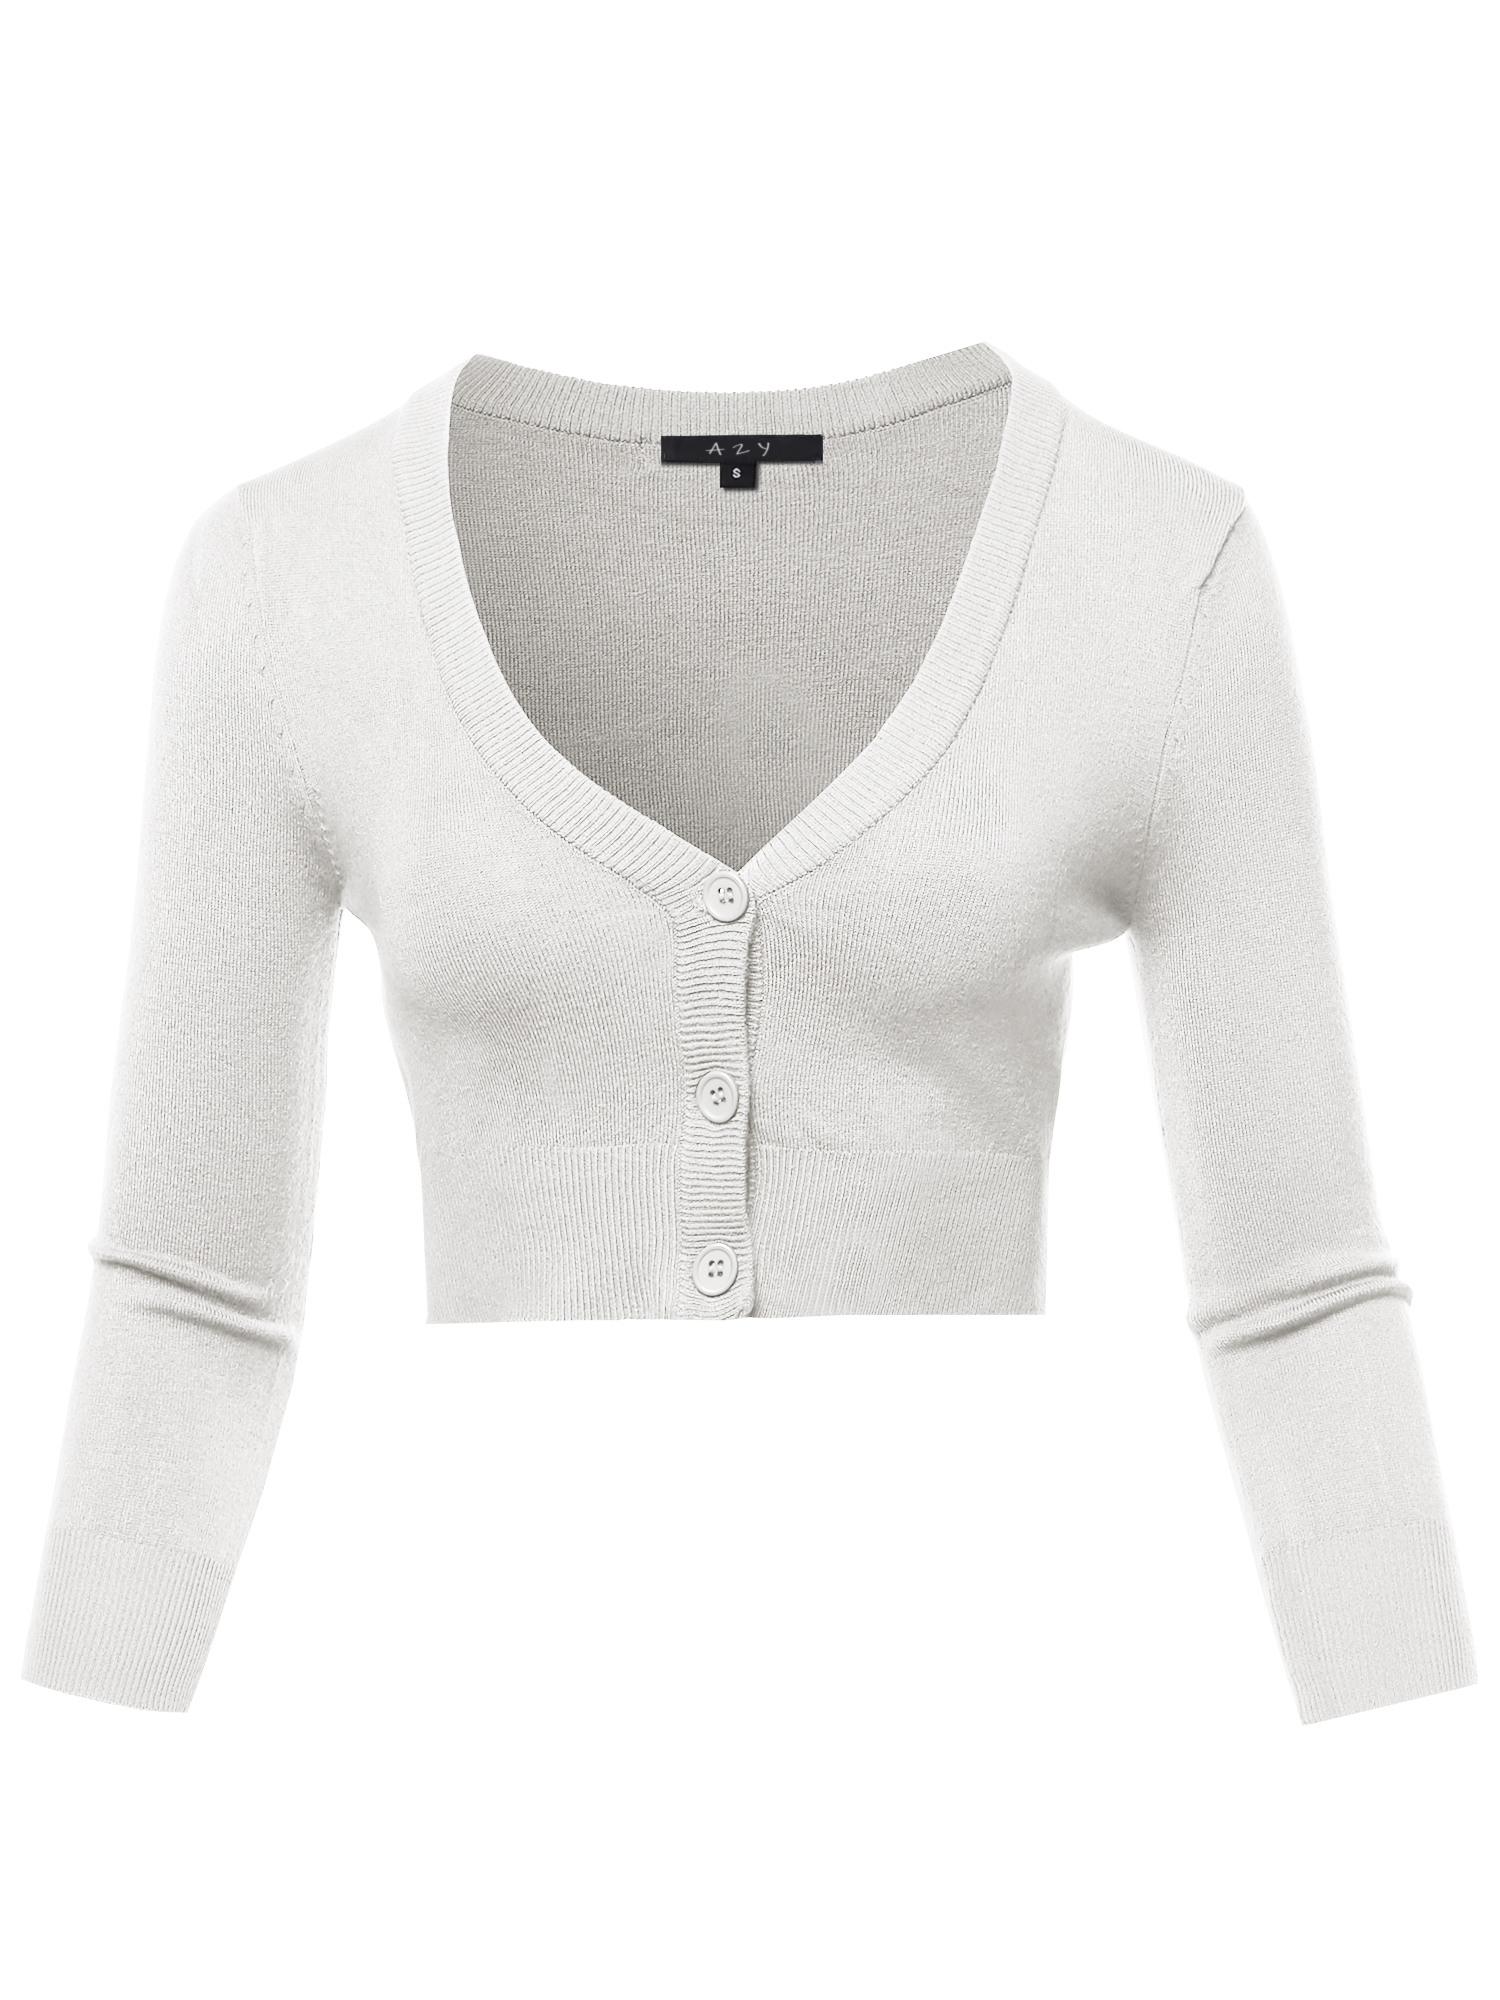 A2Y Women's Solid Cropped Bolero 34 Sleeve Button Down V Neck Cardigan Sweater White 2XL